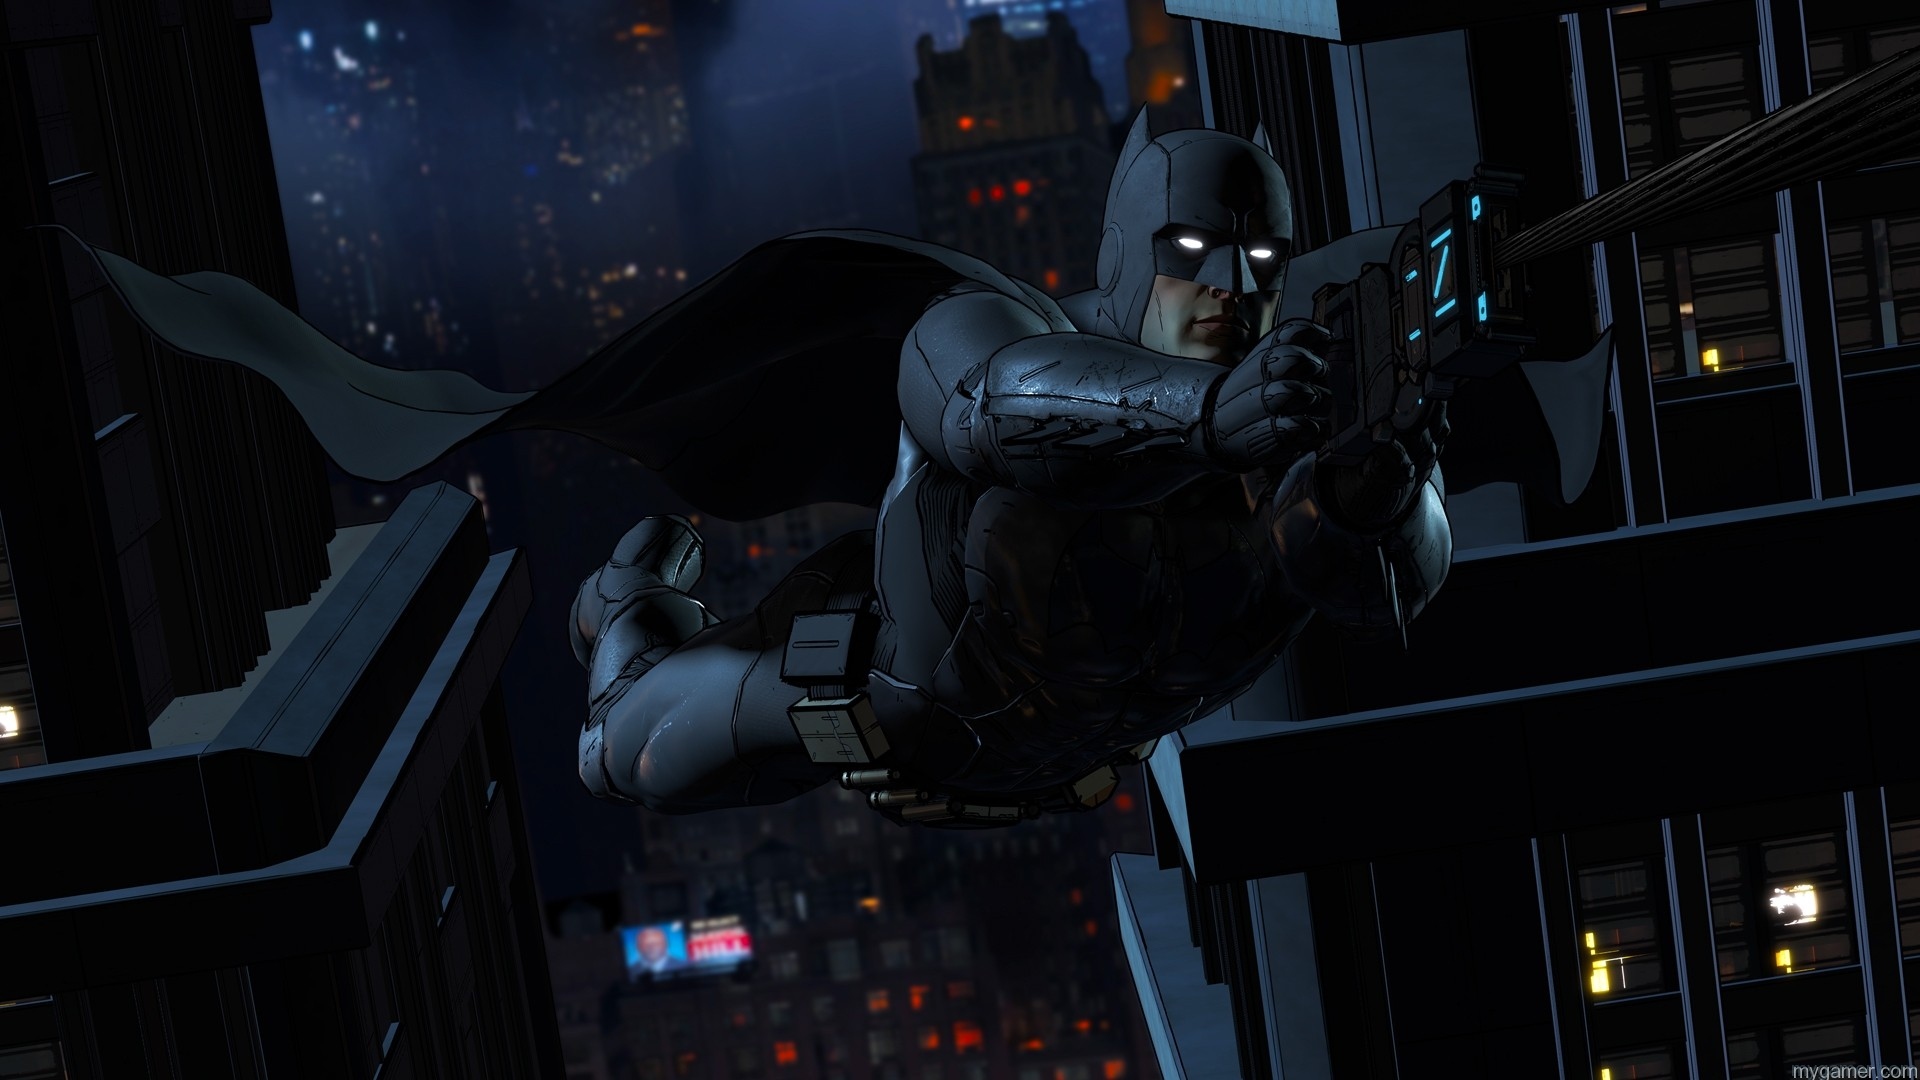 batman-telltale-ep1 Batman: The Telltale Series Episode 1 PC Review Batman: The Telltale Series Episode 1 Realm of Shadows PC Review Batman Telltale Ep1